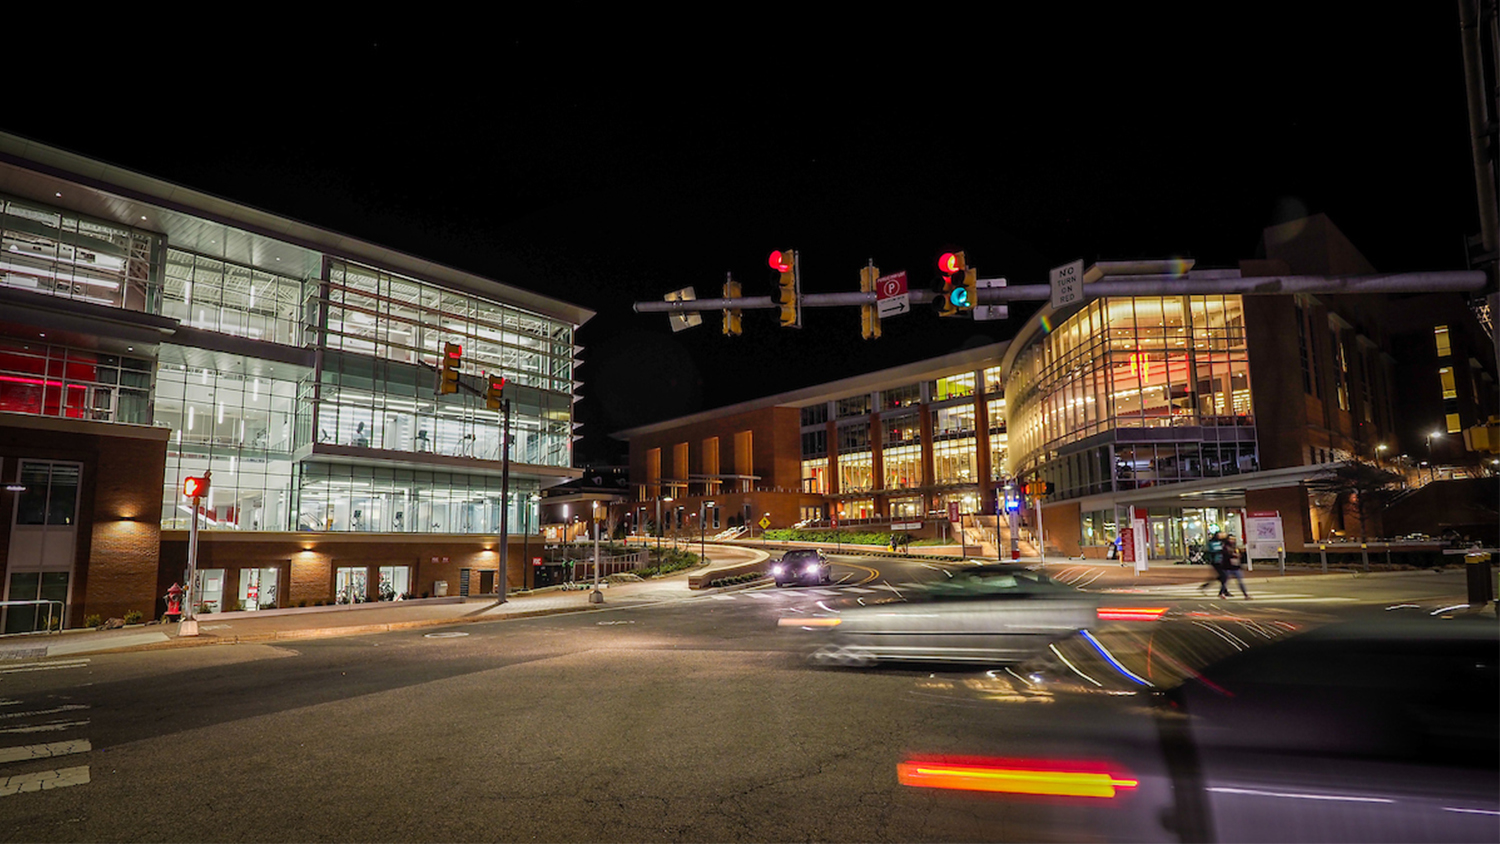 Talley Student Union and the Wellness and Recreation Center at night